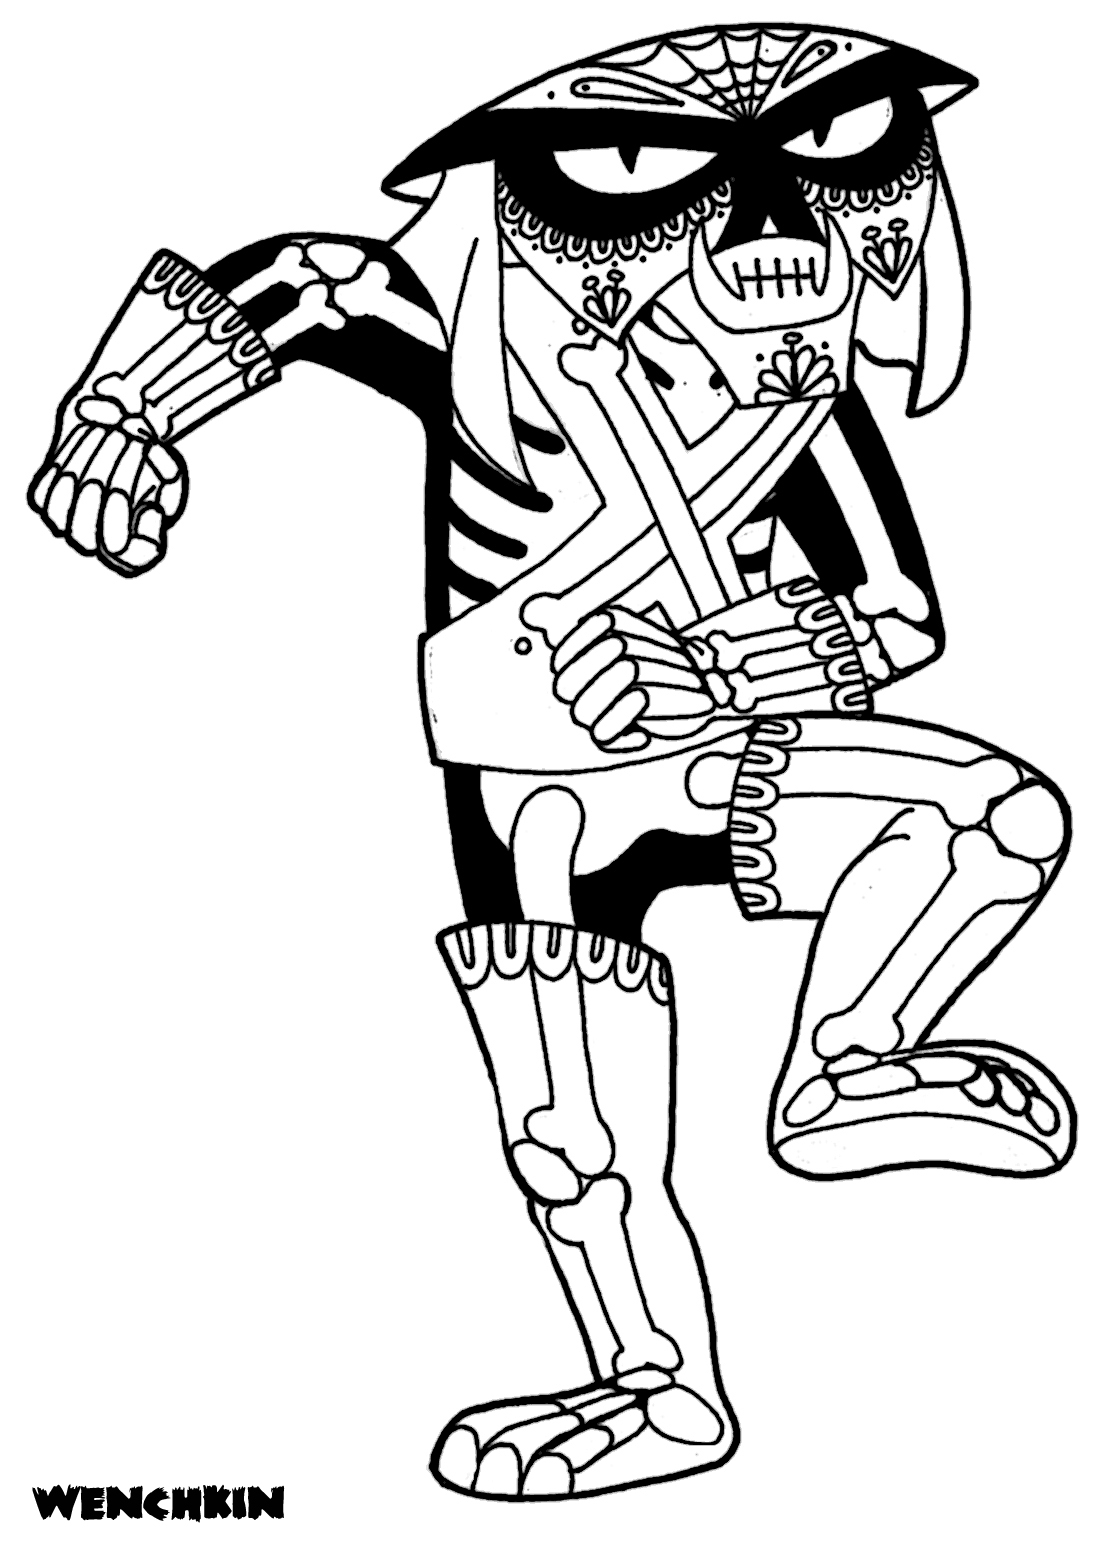 She Ra Coloring Pages Free pictures of cinderalla coloring pages ...